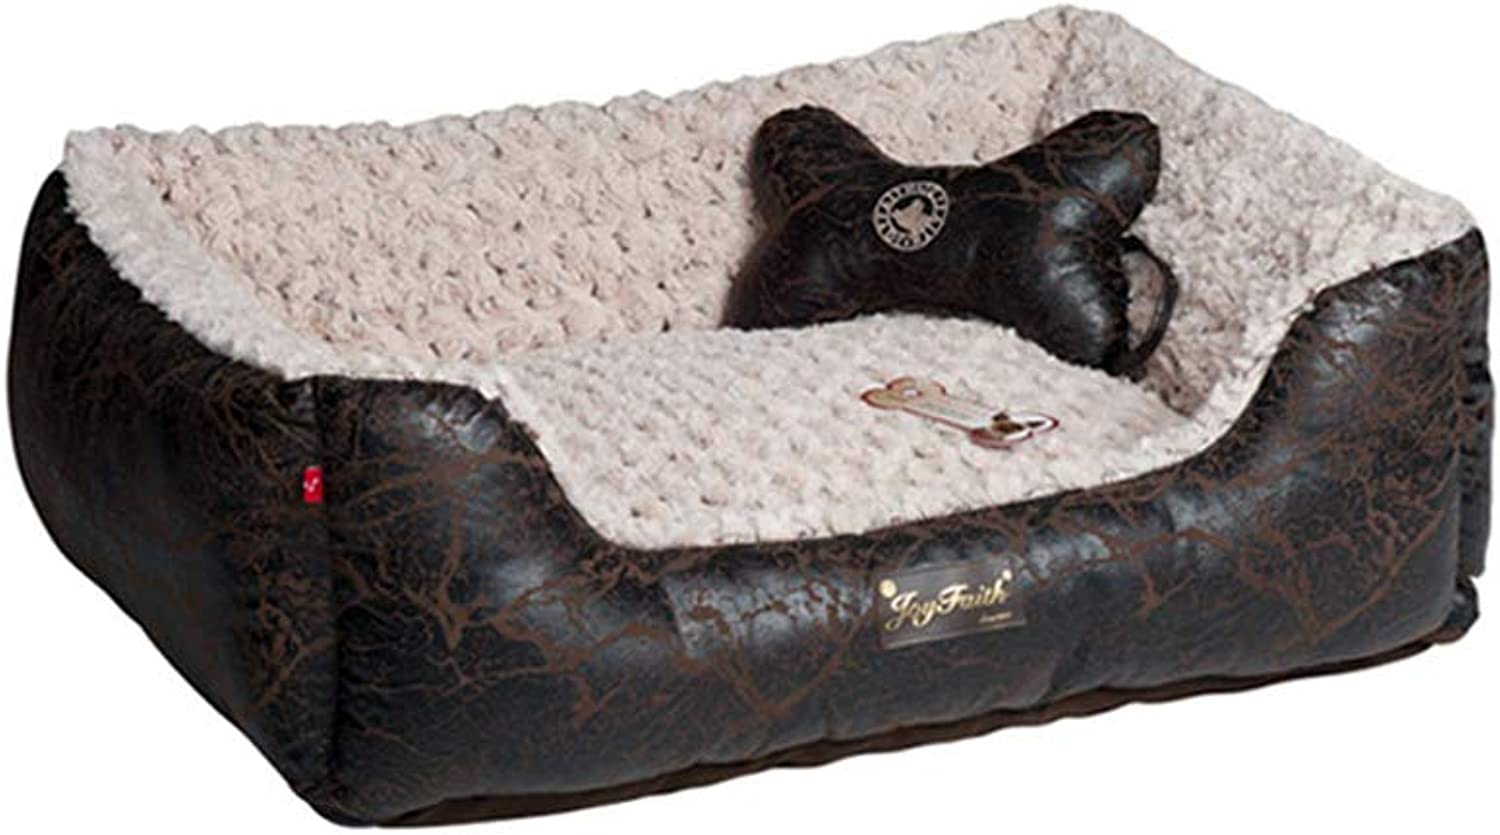 HQSB Pet bed Soft Luxurious And Comfortable Square Cat Dog Bed With Anti Slip Base (color   BLACK, Size   S)